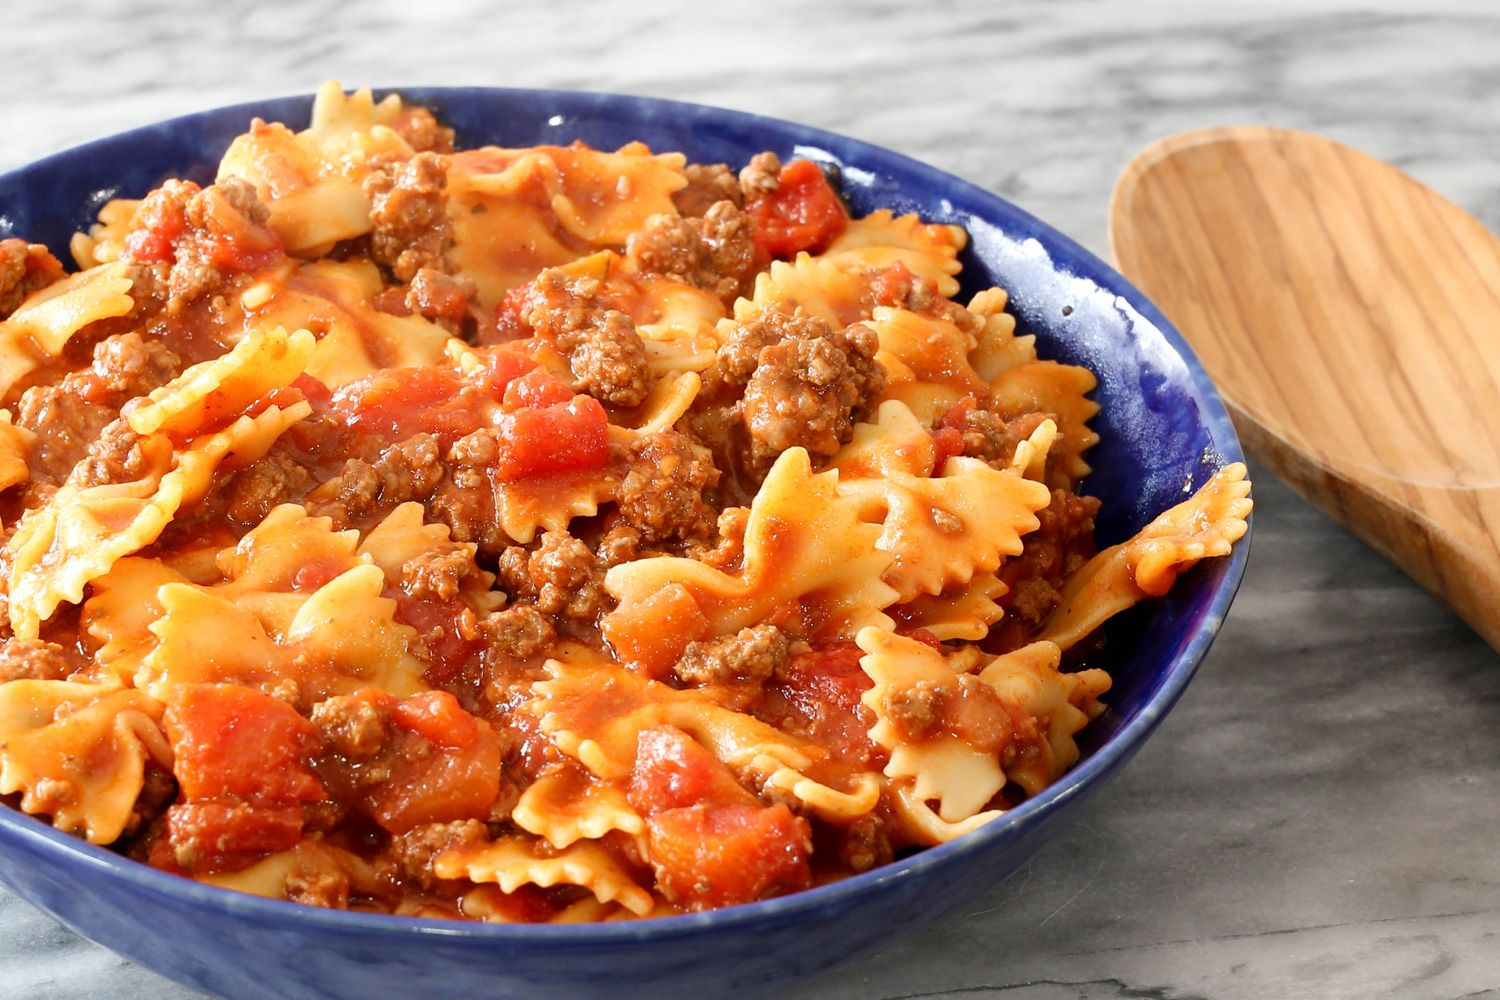 Instant Pot Beef And Farfalle Dinner Recipe With Images Instant Pot Recipes Chicken Instant Pot Recipes Recipes Using Ground Beef